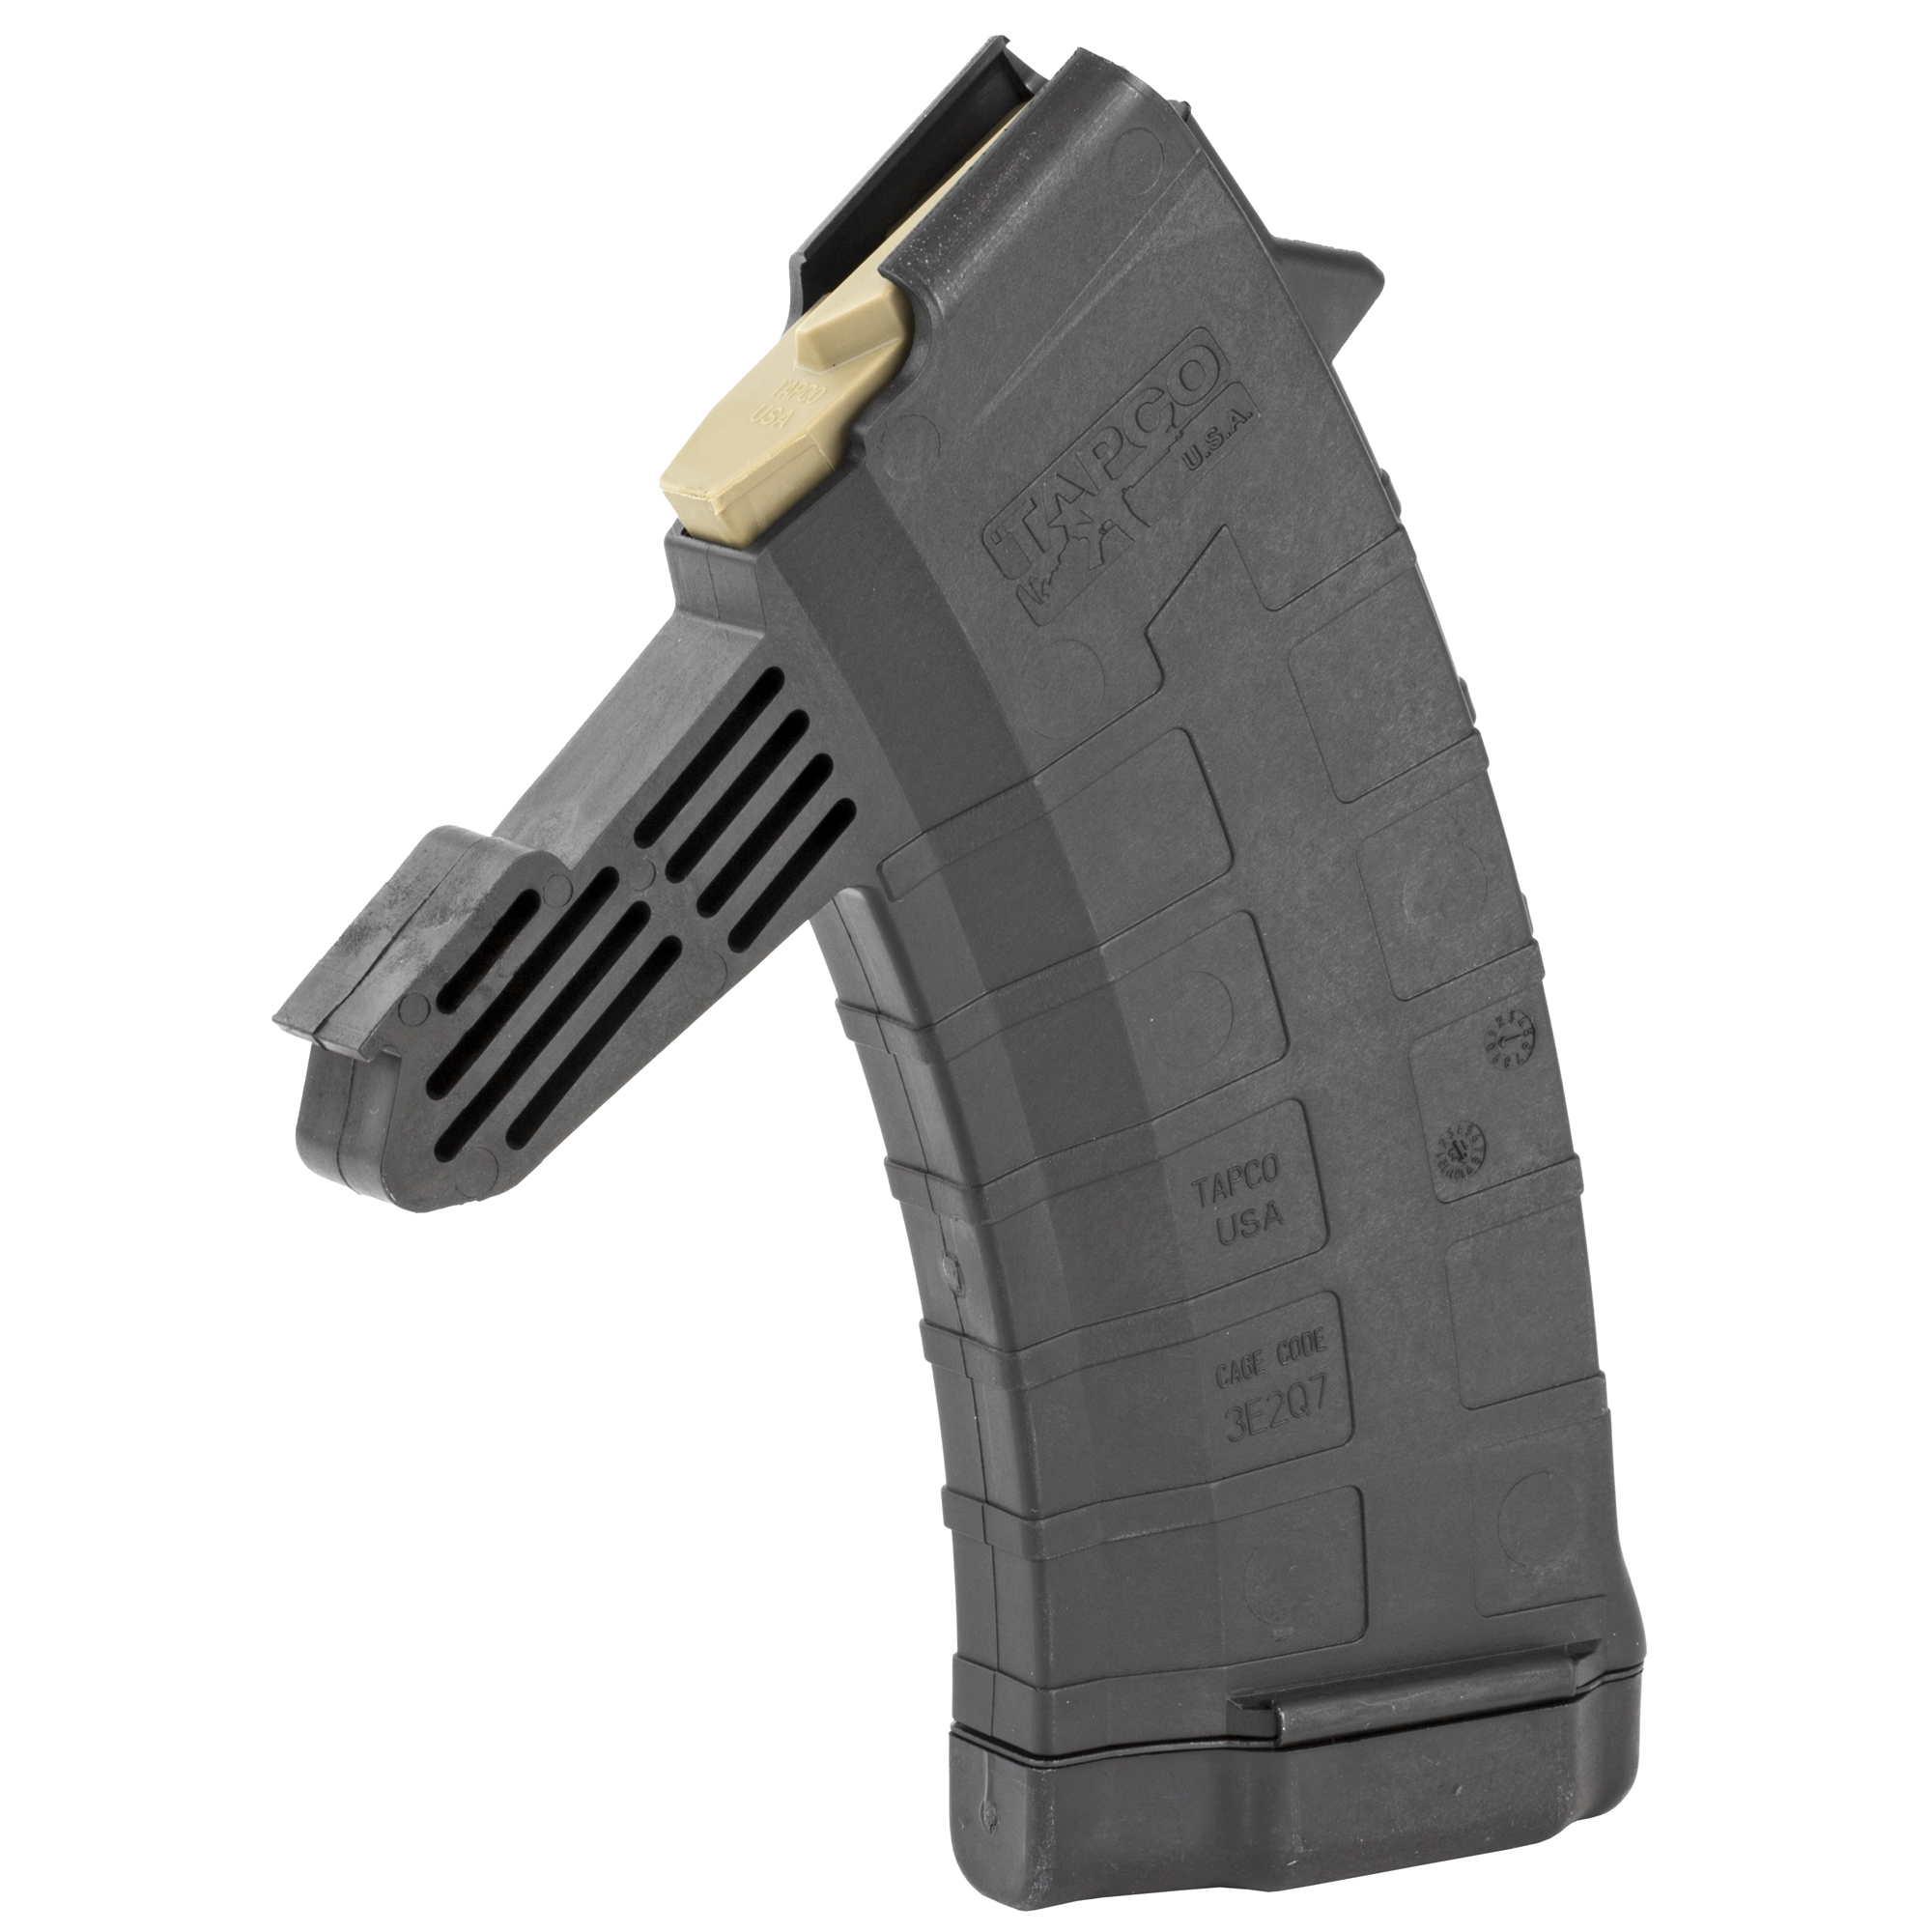 "Tapco designed the SKS Detachable Magazine with serious shooters in mind. The mag body"" made of high strength composite"" has horizontal grooves cut into it for an enhanced gripping surface. Tapco used the highest quality interior components and incorporated a metal floorplate so you can expect maximum strength from this magazine. That"" plus the fact that this mag is made in the U.S.A. so it counts for three compliance parts."